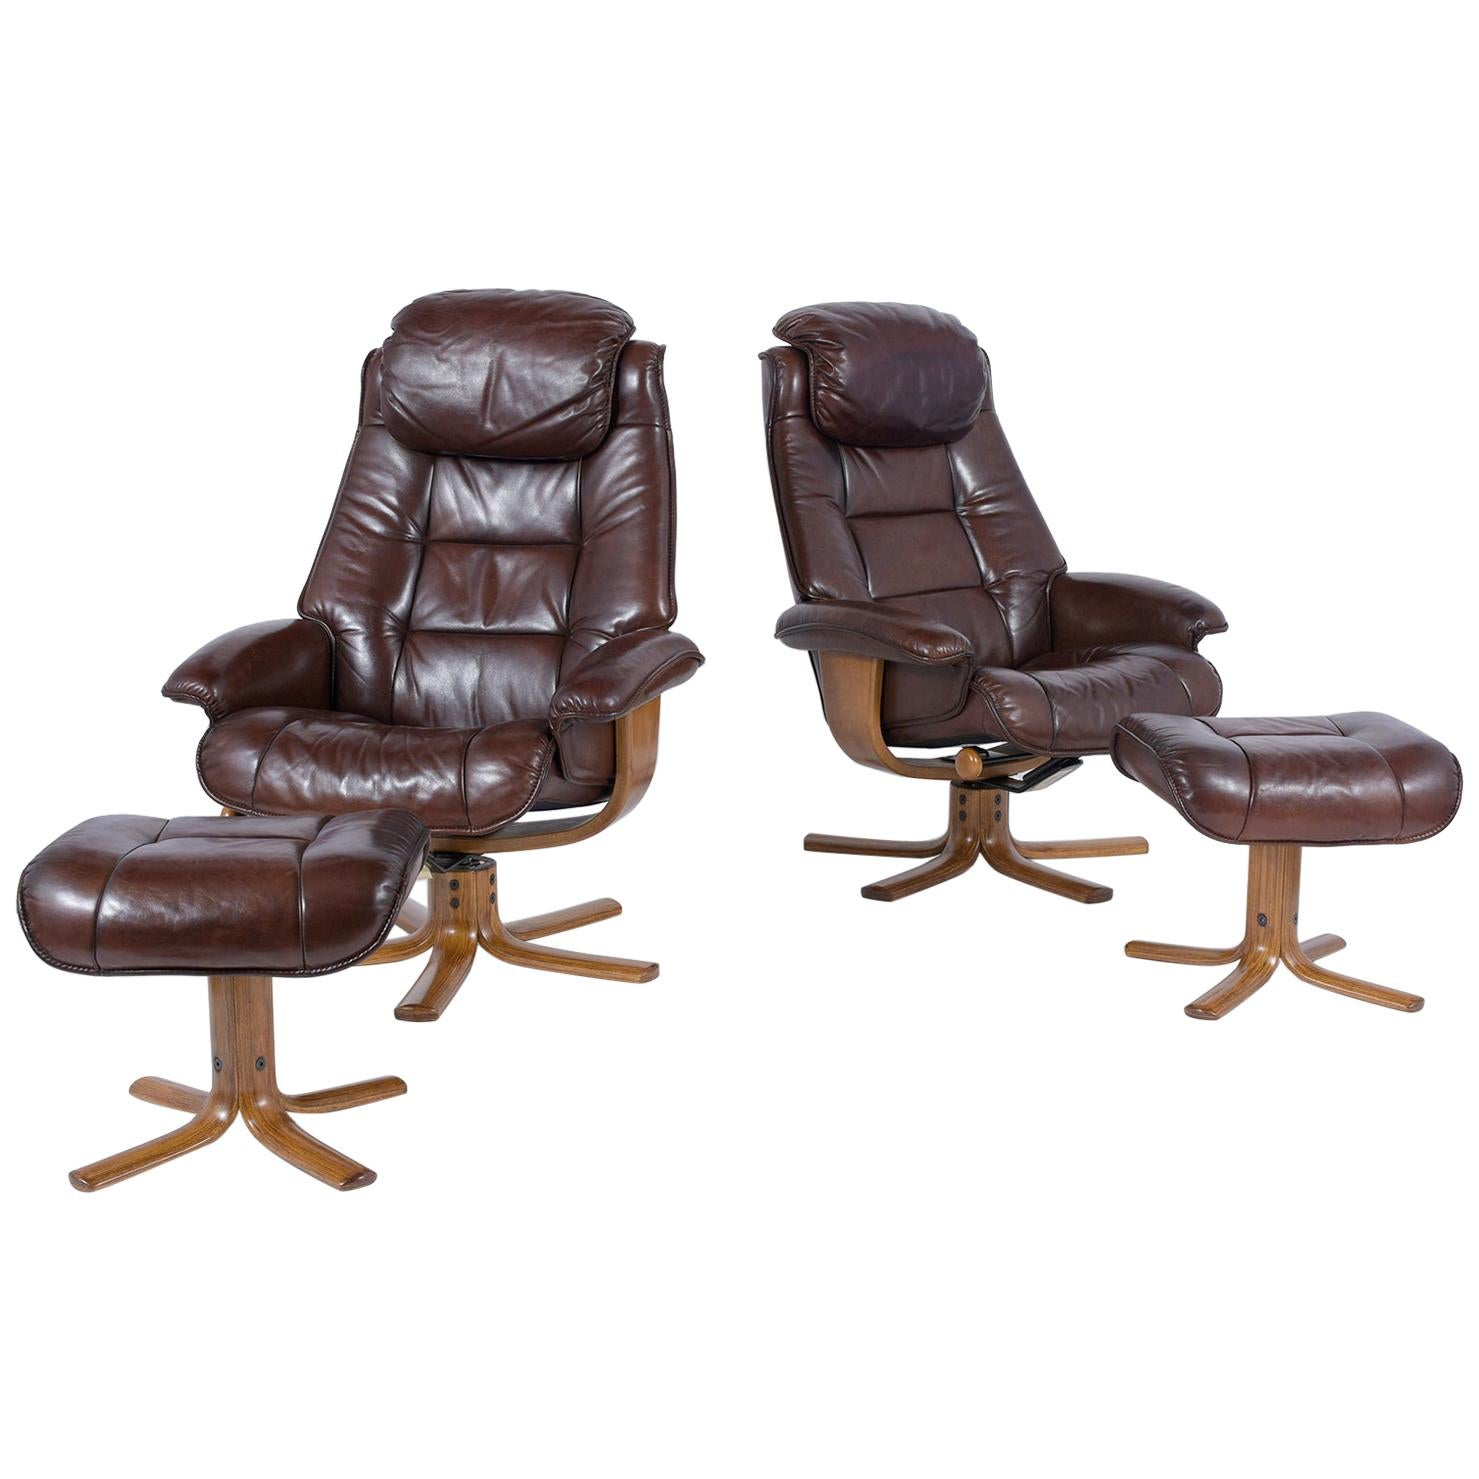 Pair of Mid-Century Swivel Leather Chairs with Ottomans